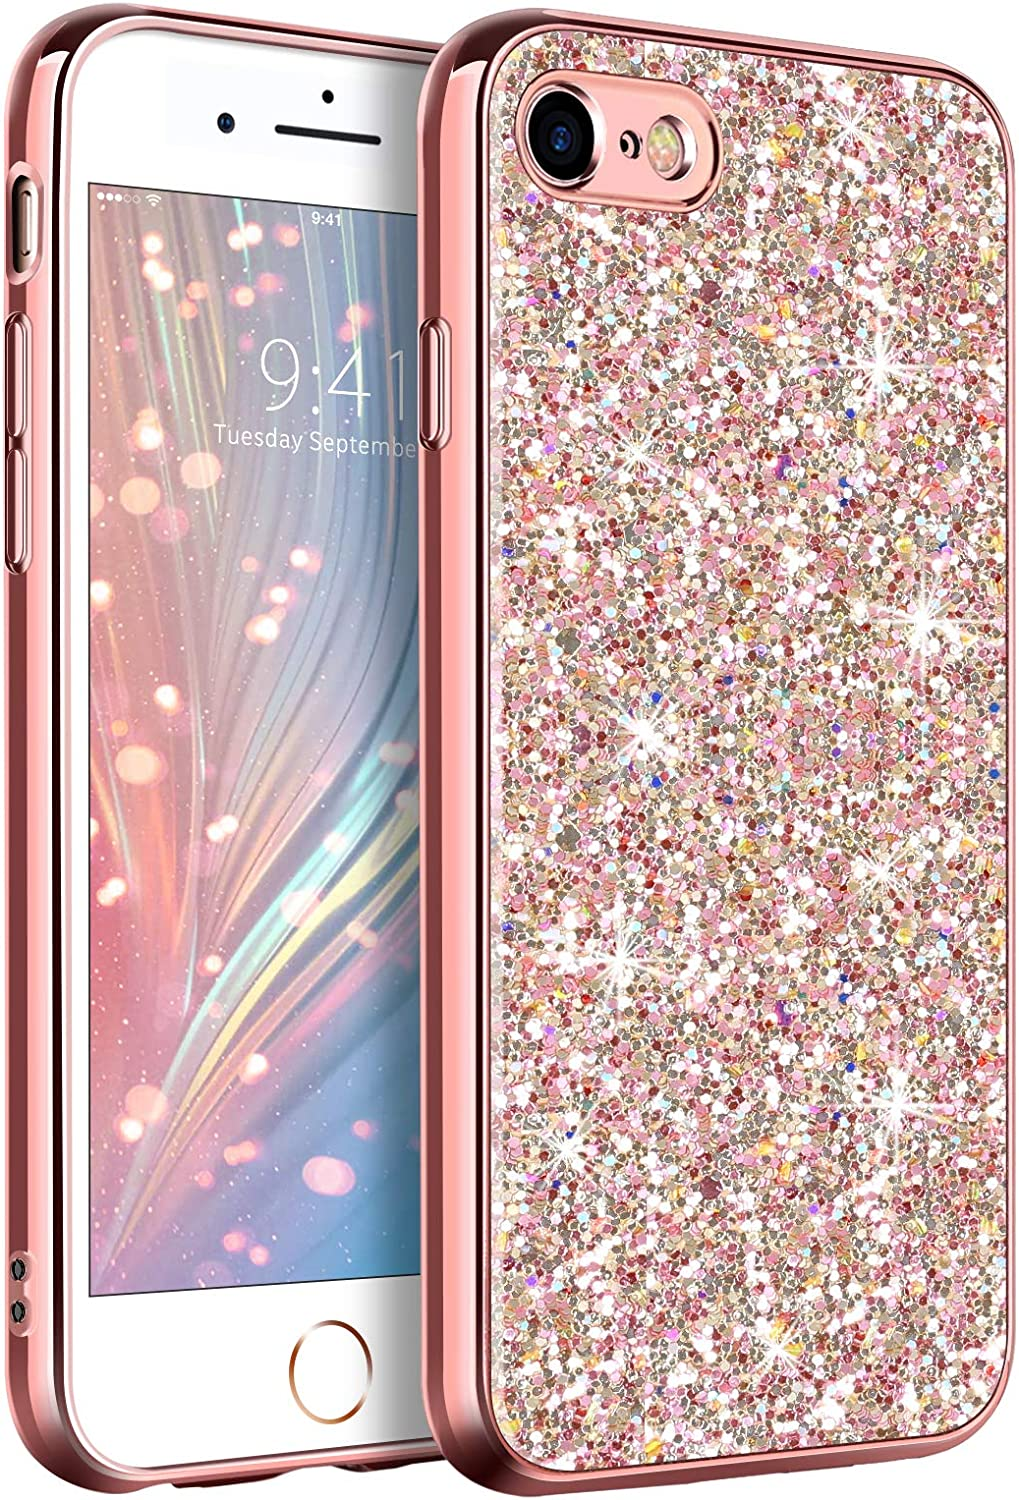 GUAGUA Compatible with iPhone SE 2020 Case iPhone 8/7 Case Glitter Sparkle Bling Shiny Phone Cases for Girls Women Slim Fit Durable Hybrid Shockproof Protective Cover for iPhone SE 2020/8/7 Rose Gold